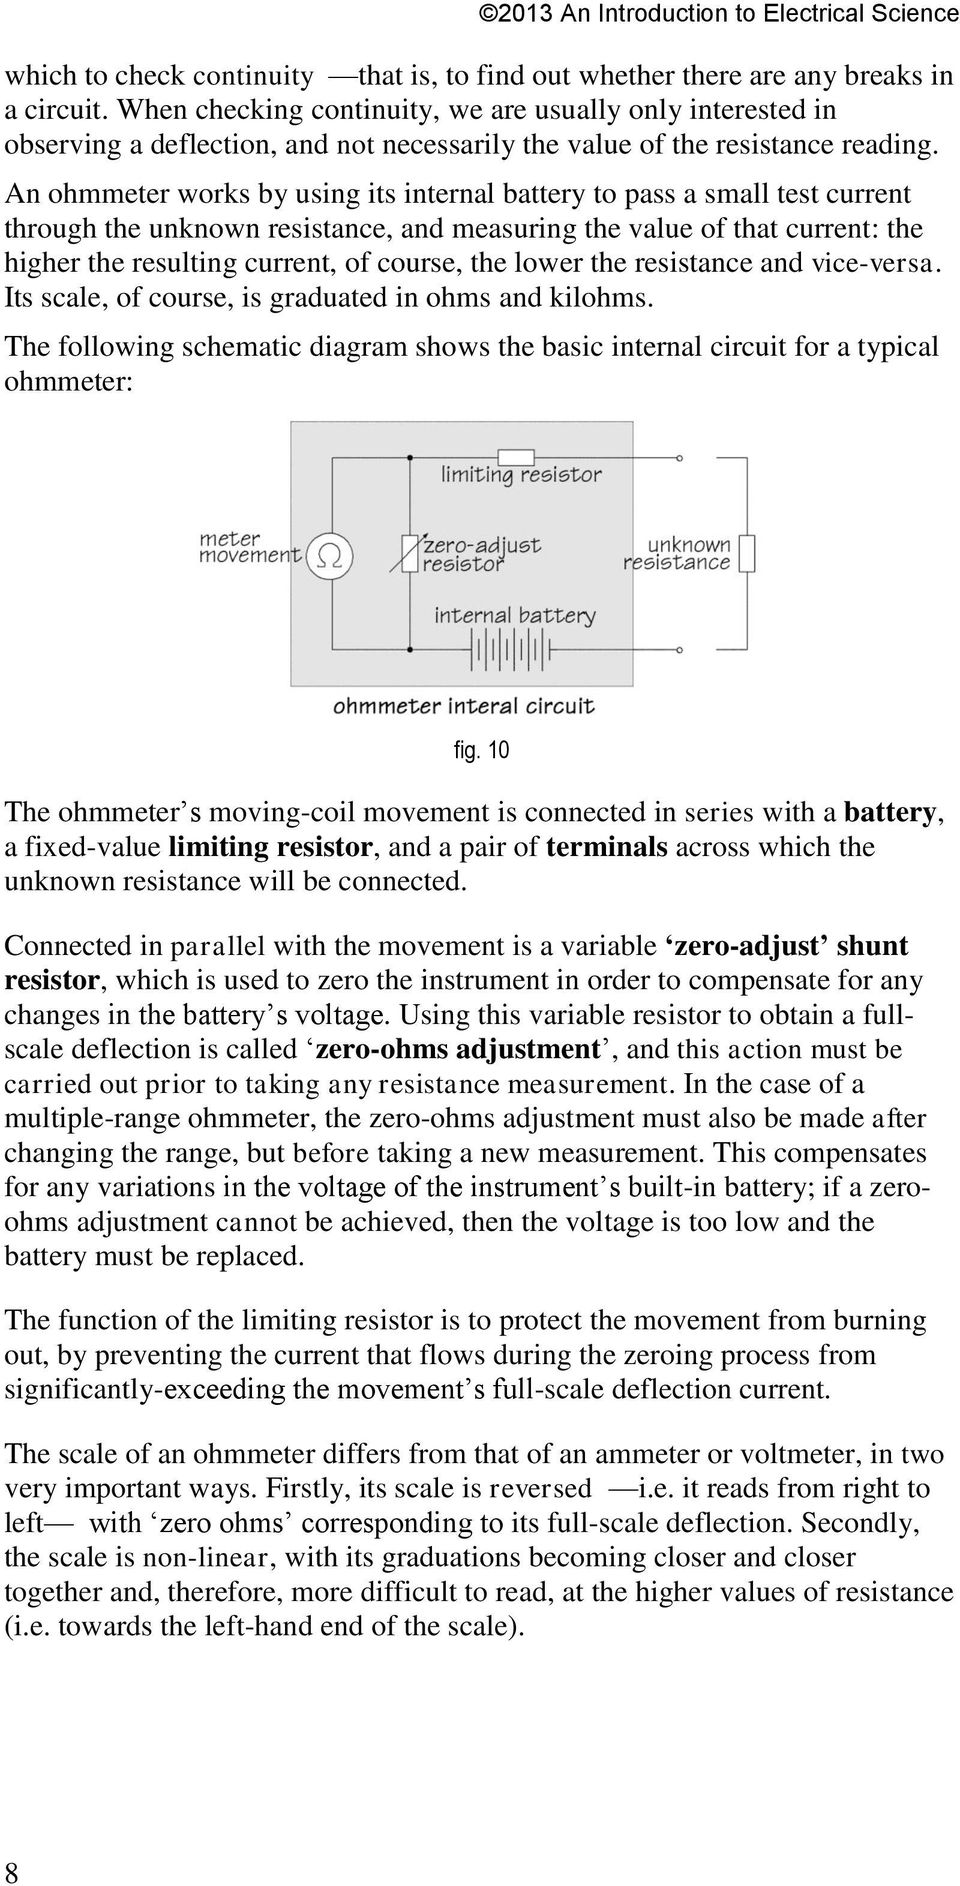 Electrical Measuring Instruments Pdf Science Electricity Simple Circuit Battery Fundamental Photographs An Ohmmeter Works By Using Its Internal To Pass A Small Test Current Through The